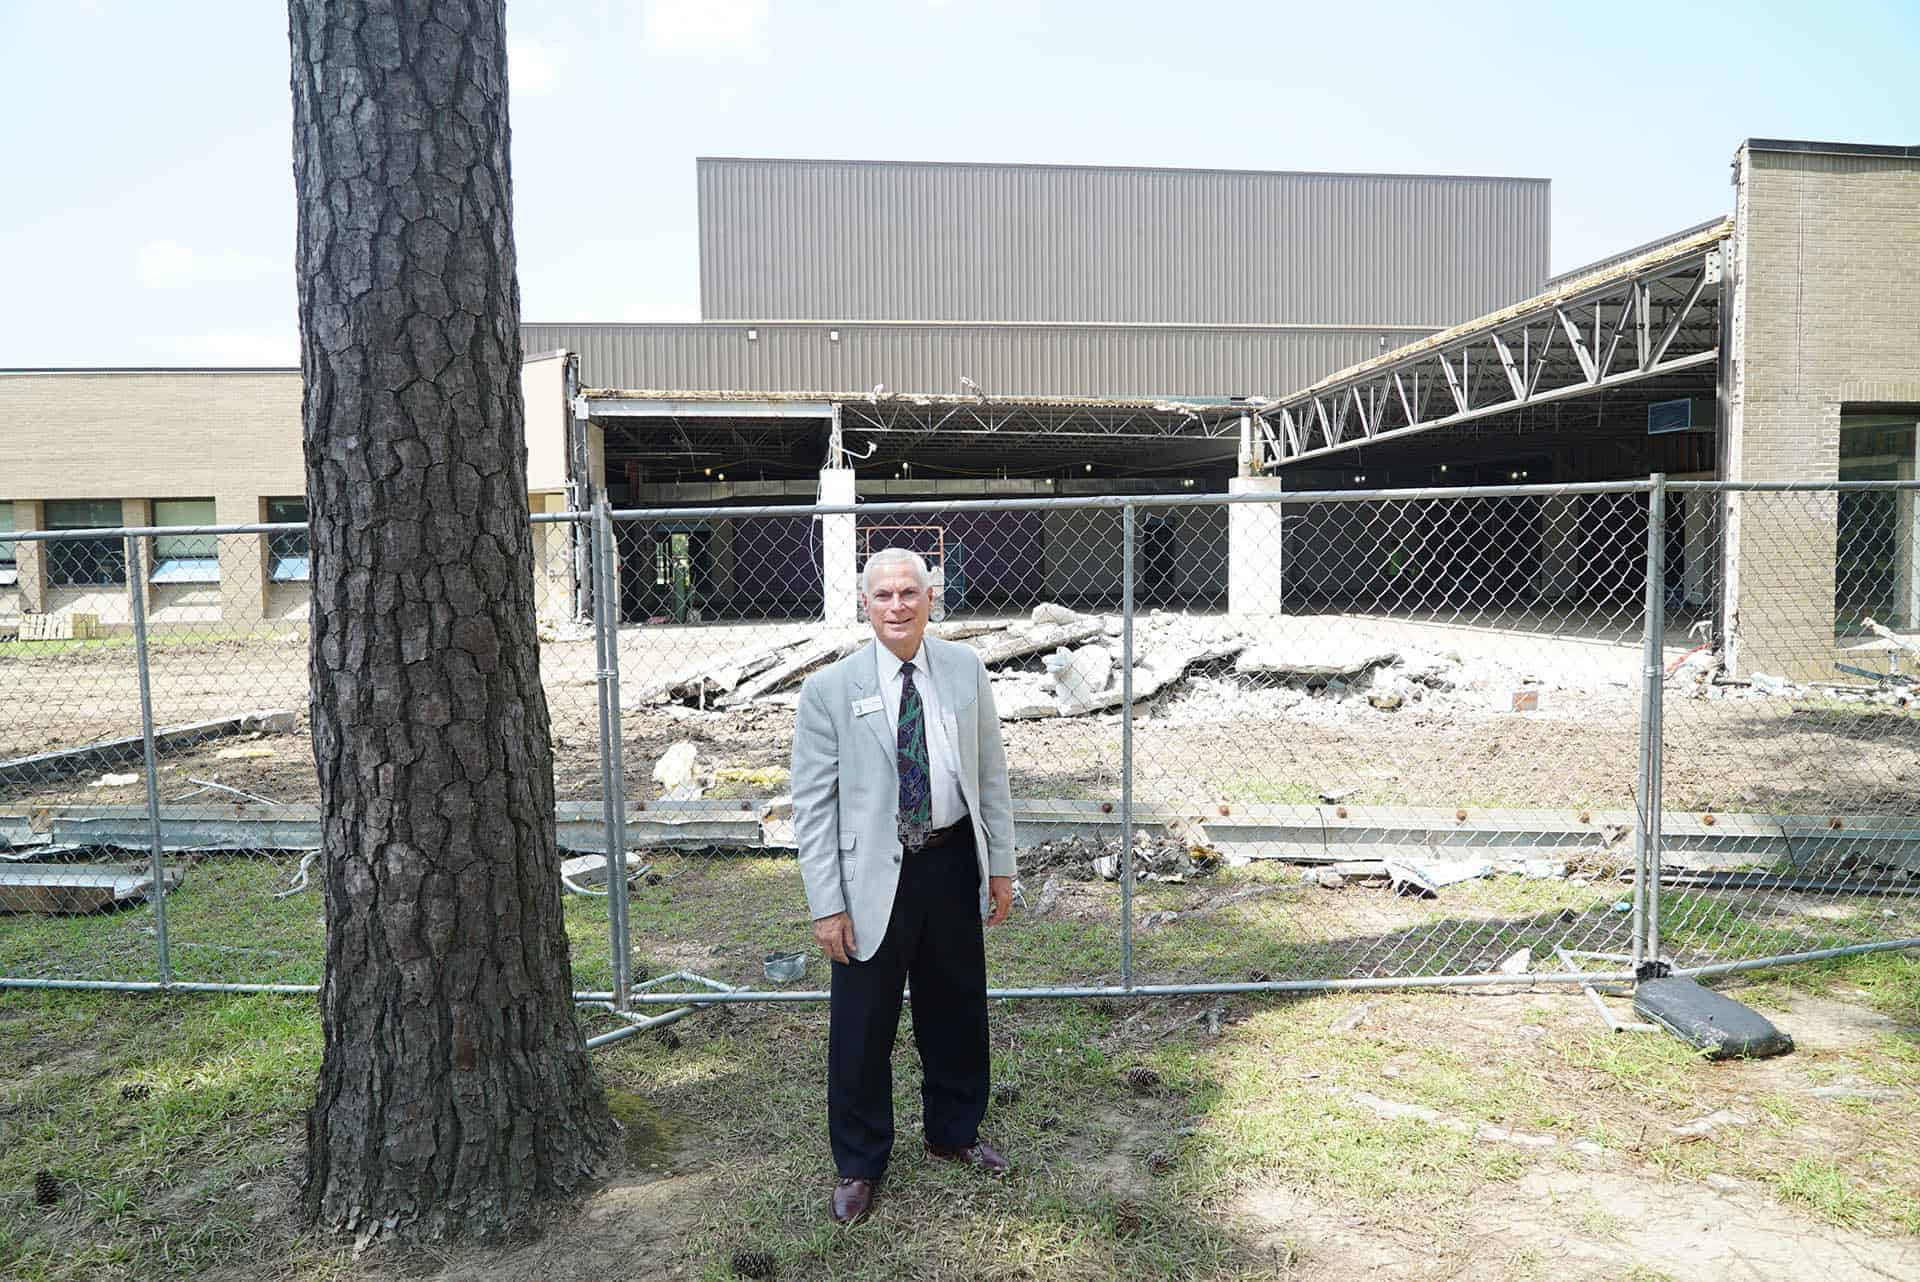 President Johnson stands in front of construction rubble